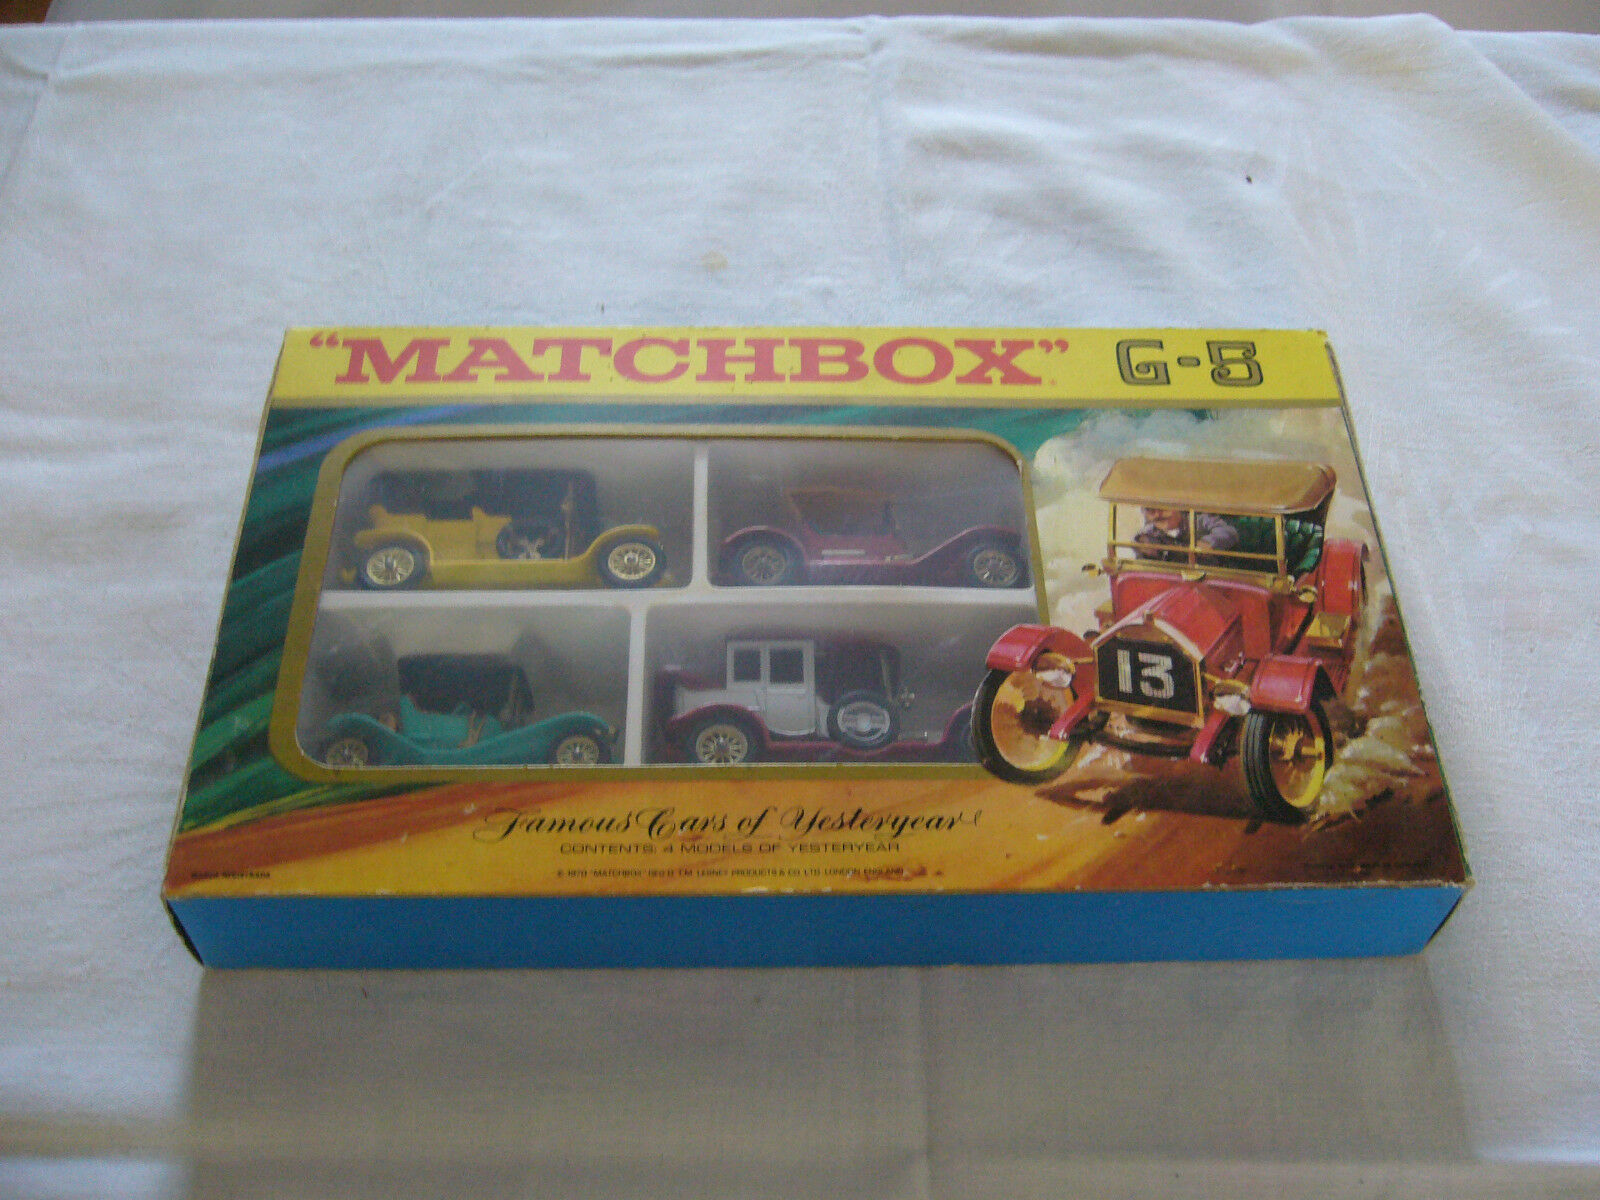 MATCHBOX-MODELS OF YESTERYEAR CONFEZIONE REGALO g-5 1970